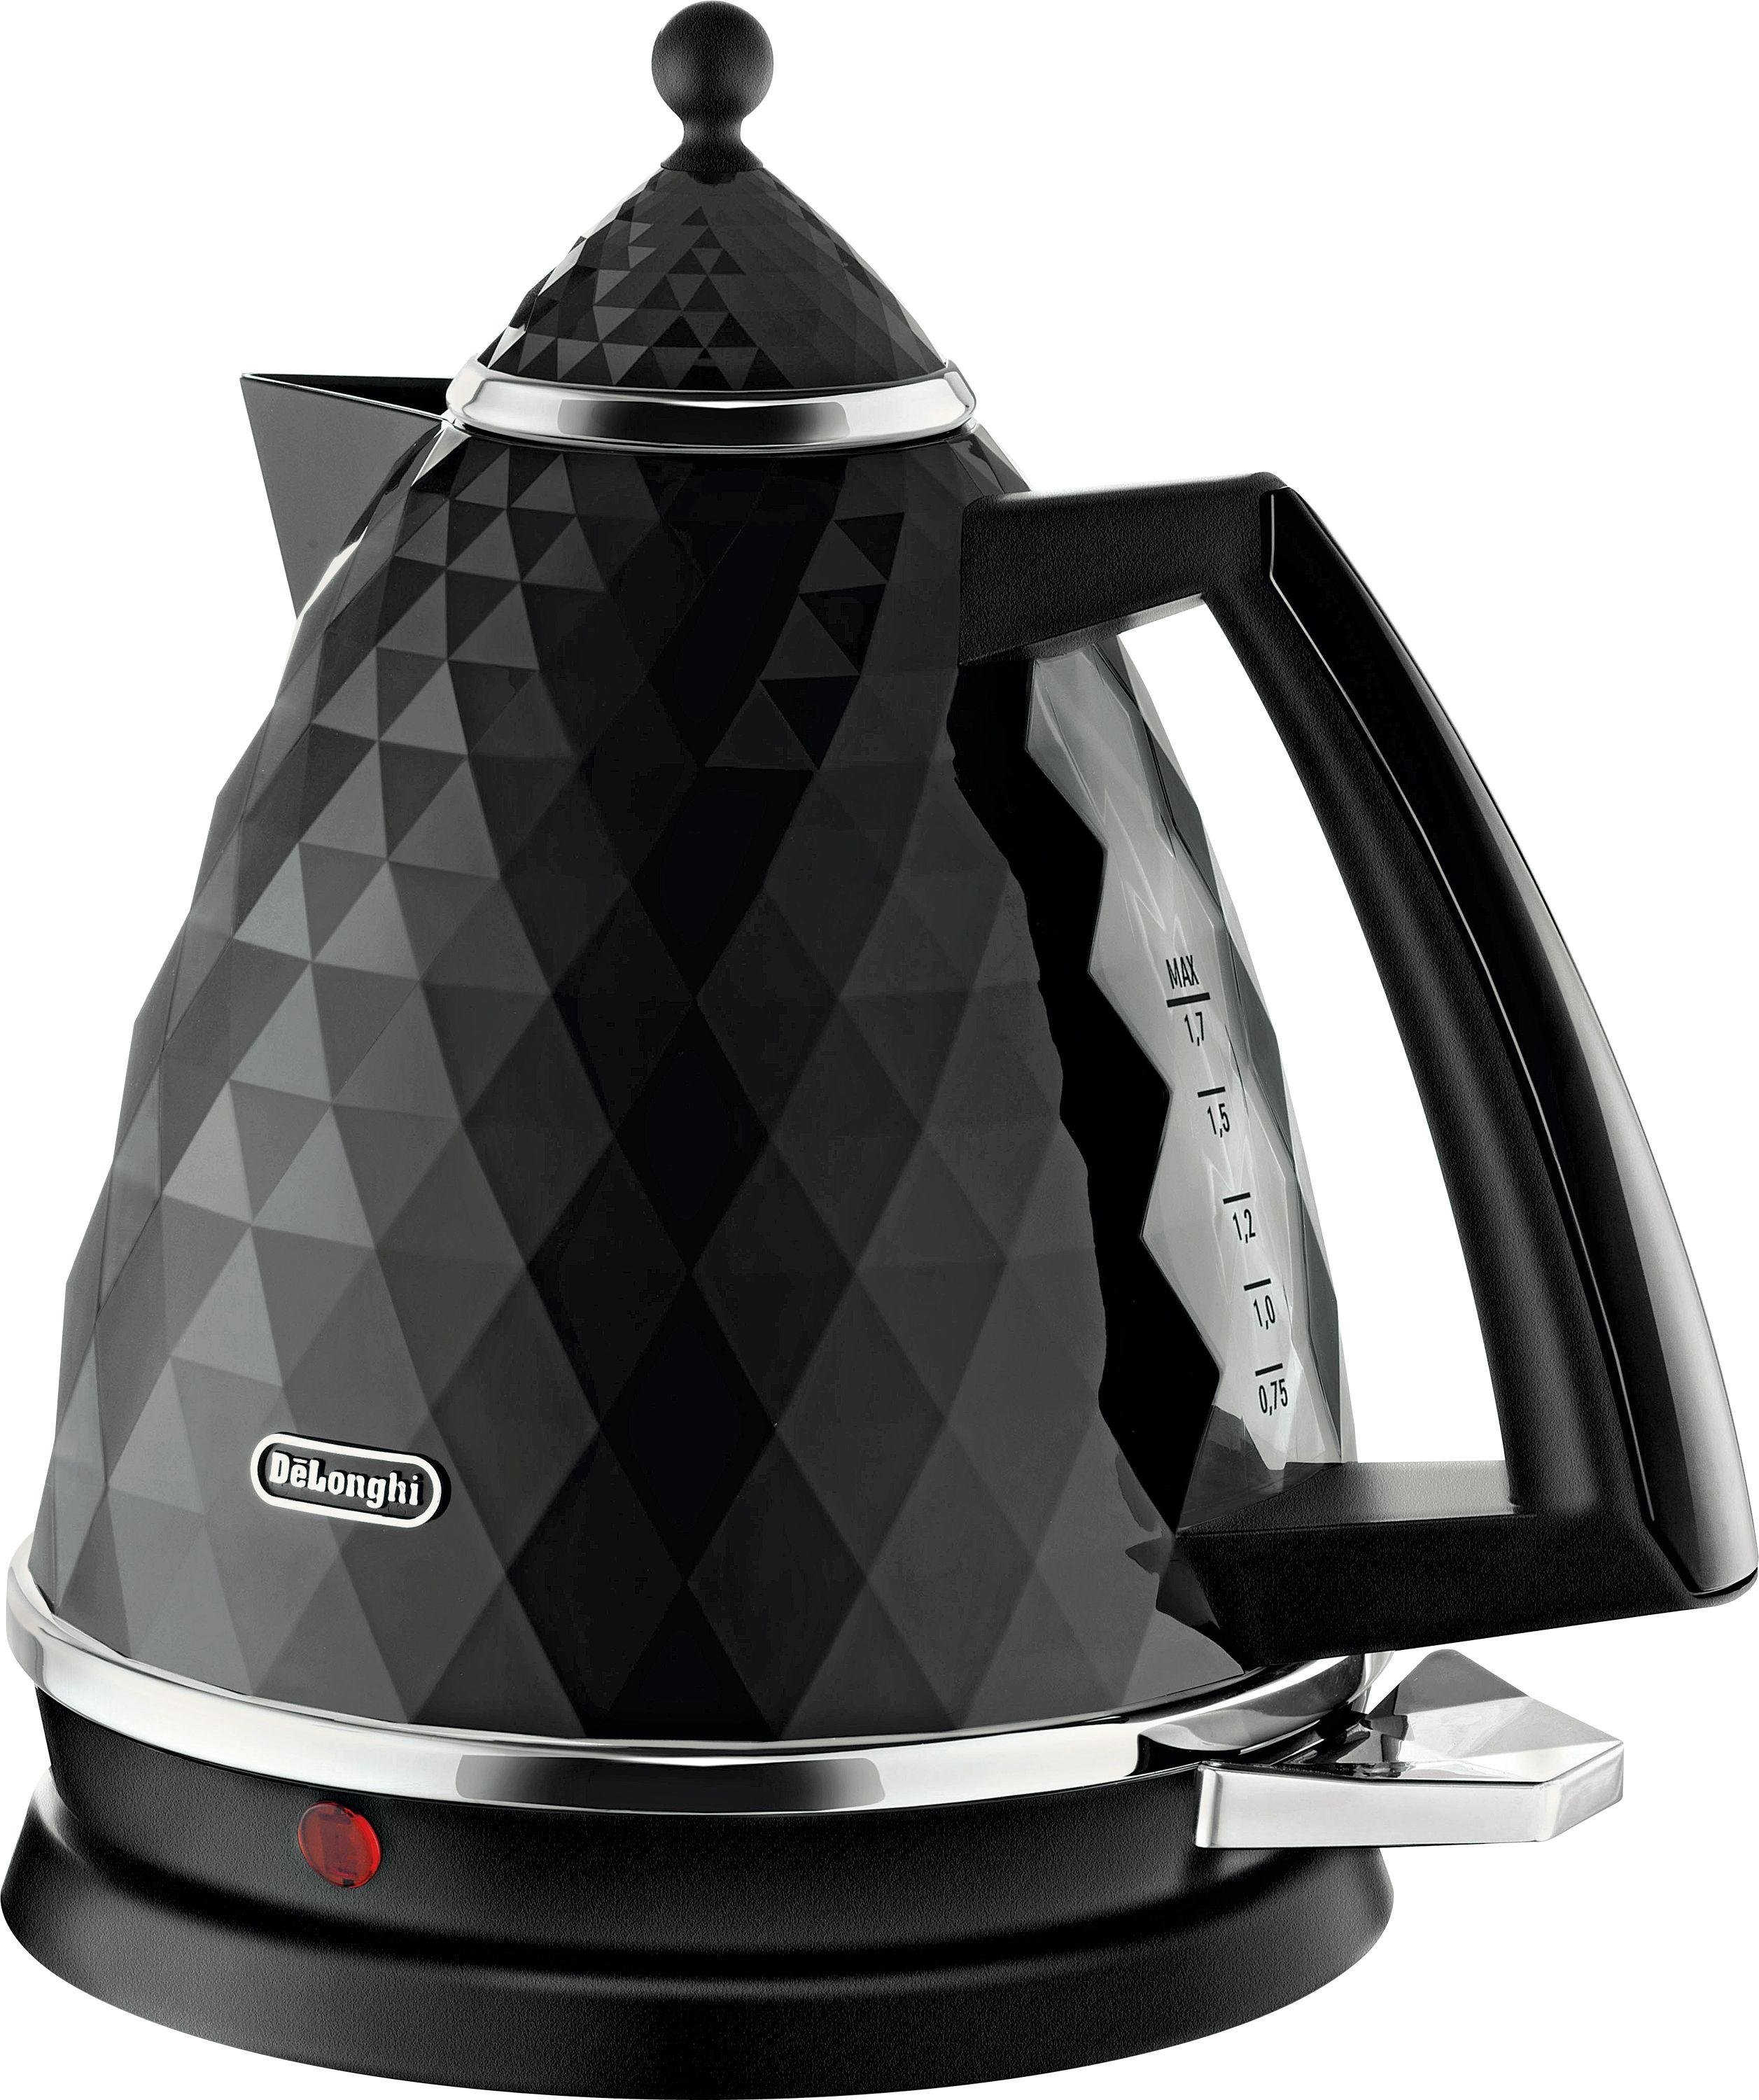 De'Longhi KBJ3001 Brillante Kettle - Black